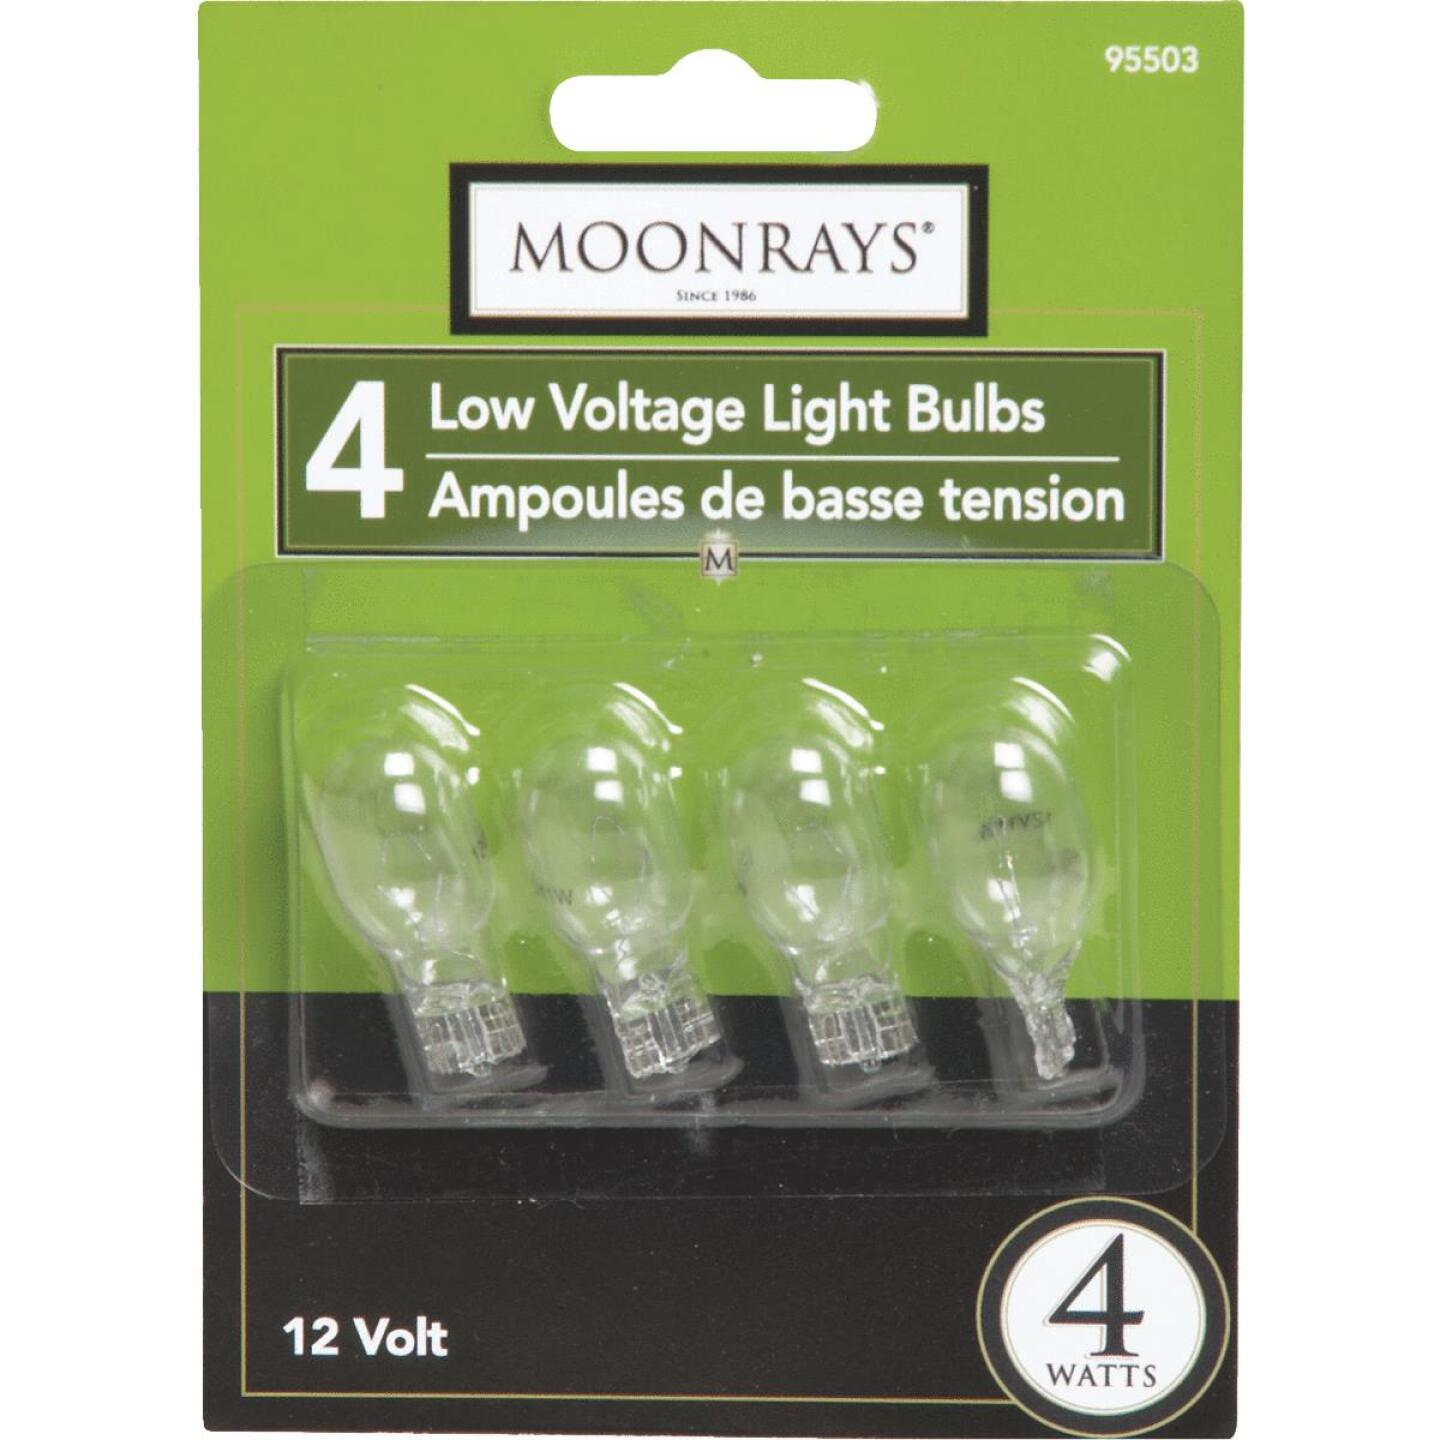 Moonrays 4W Clear T5 Wedge Base Landscape Low Voltage Light Bulb (4-Pack) Image 2